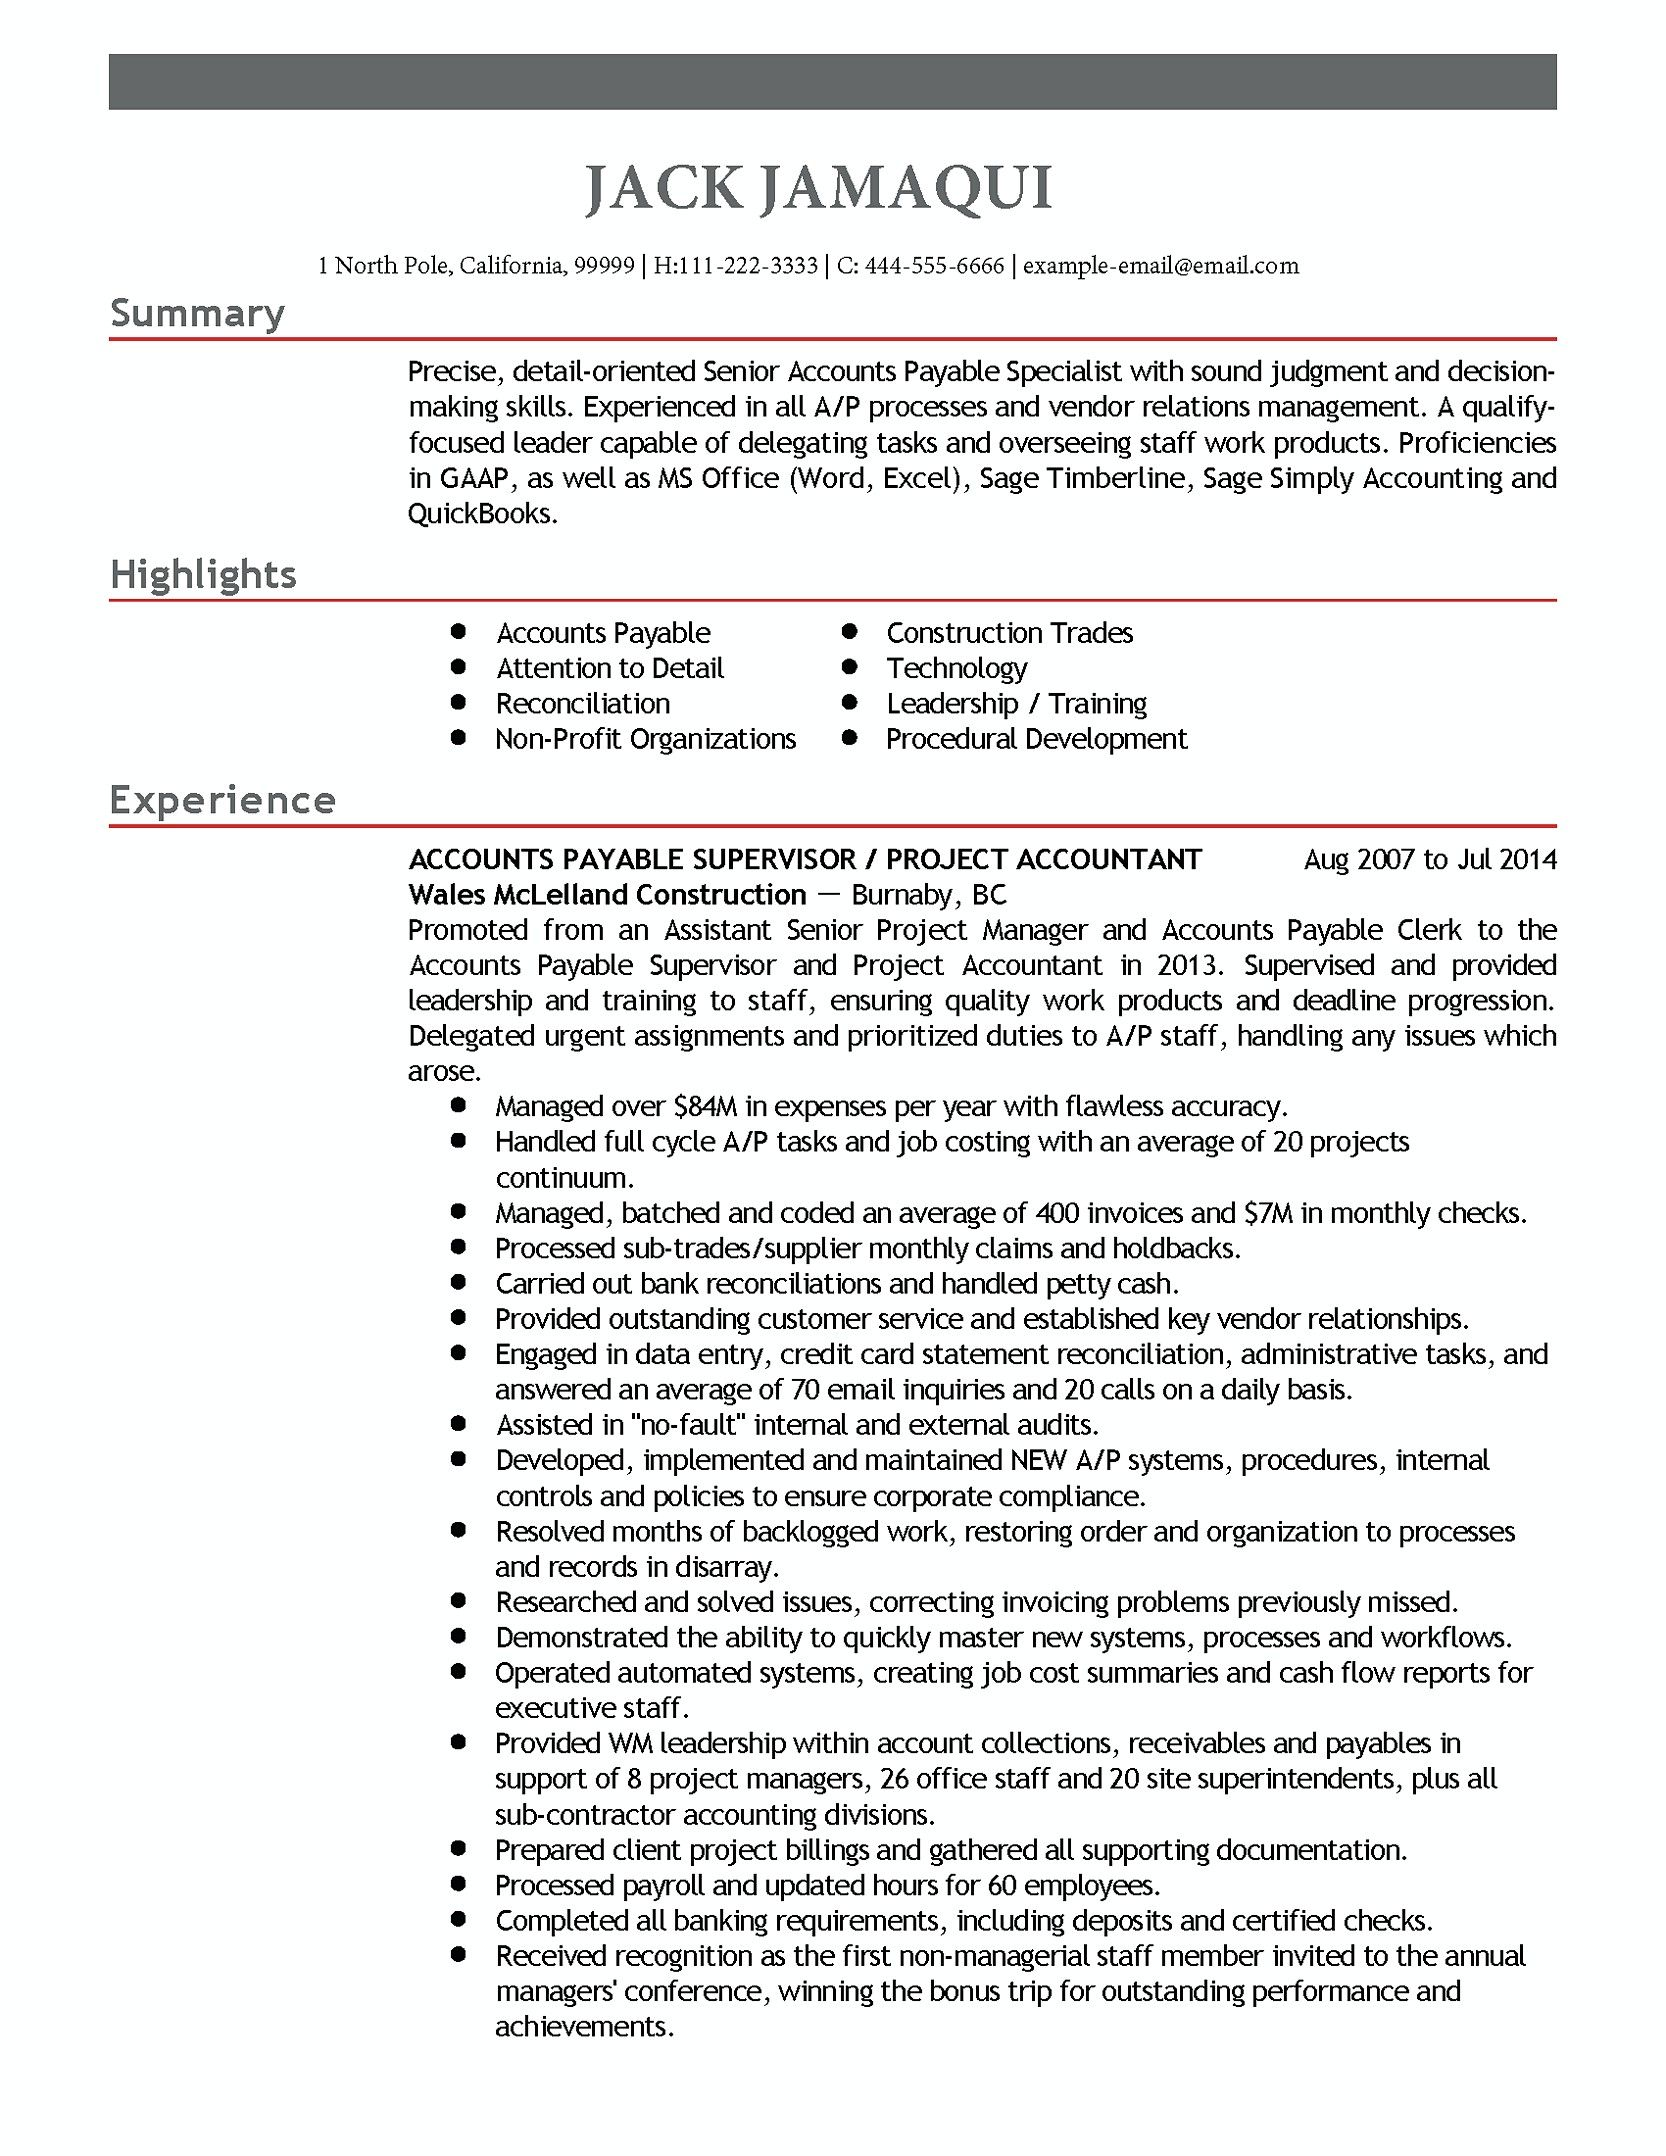 Accounts Payable Manager Resume , Accounts Payable Manager Resume ...